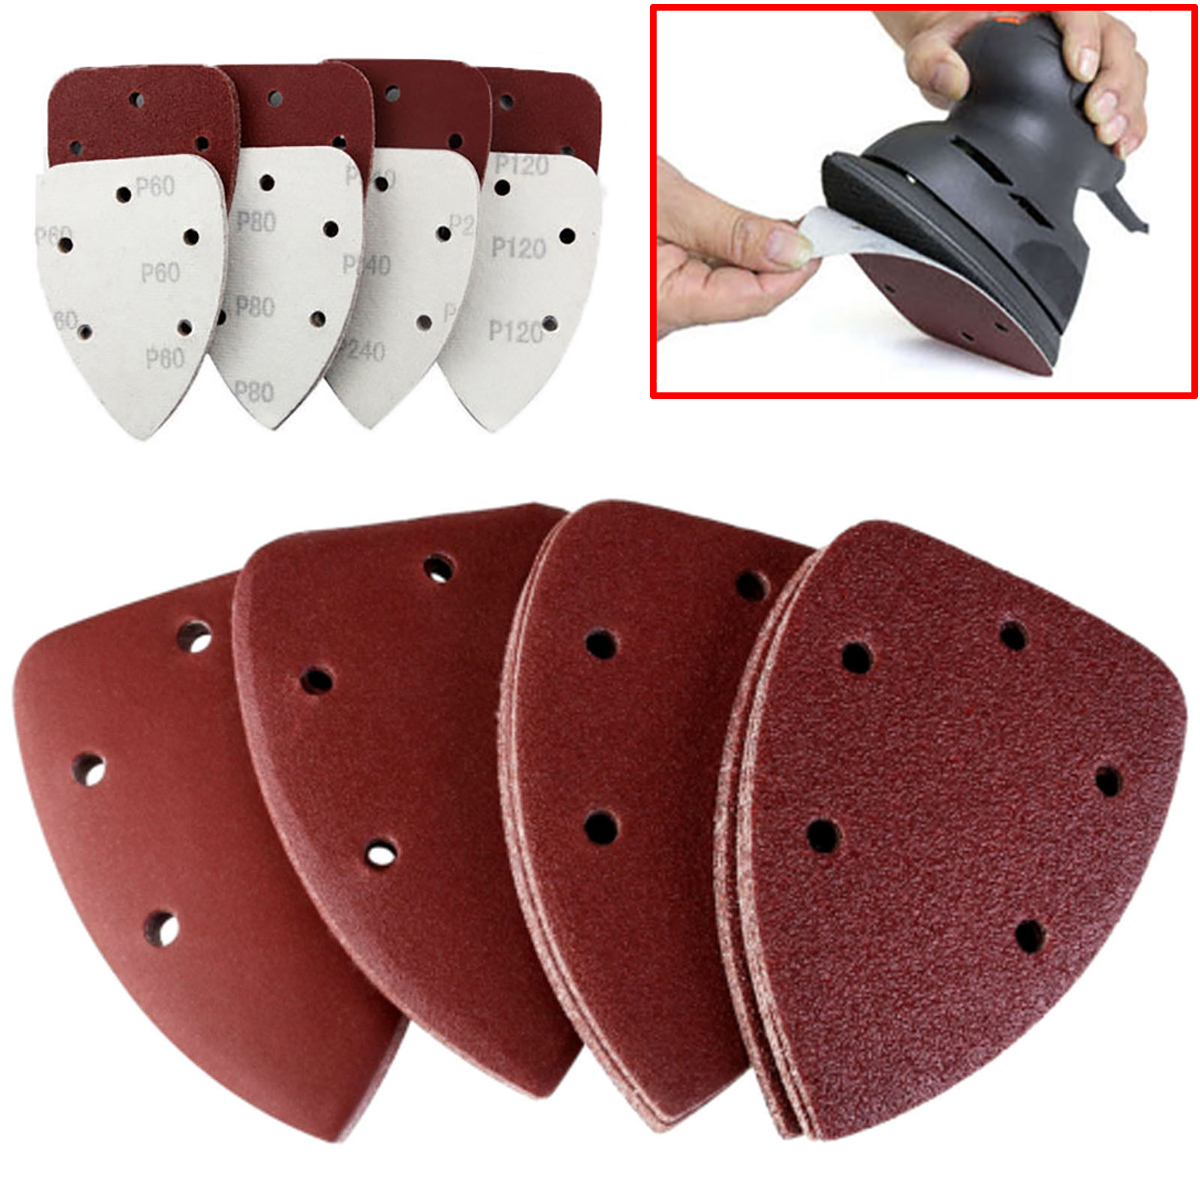 40pcs New Sanding Pads Mouse Sandpaper Disc 40/80/120/240 Grit 140x100mm For Polishing Tools 10pcs dremel accessories sandpaper sanding flap polishing wheels sanding disc set shutter polishing wheel for rotary power tools